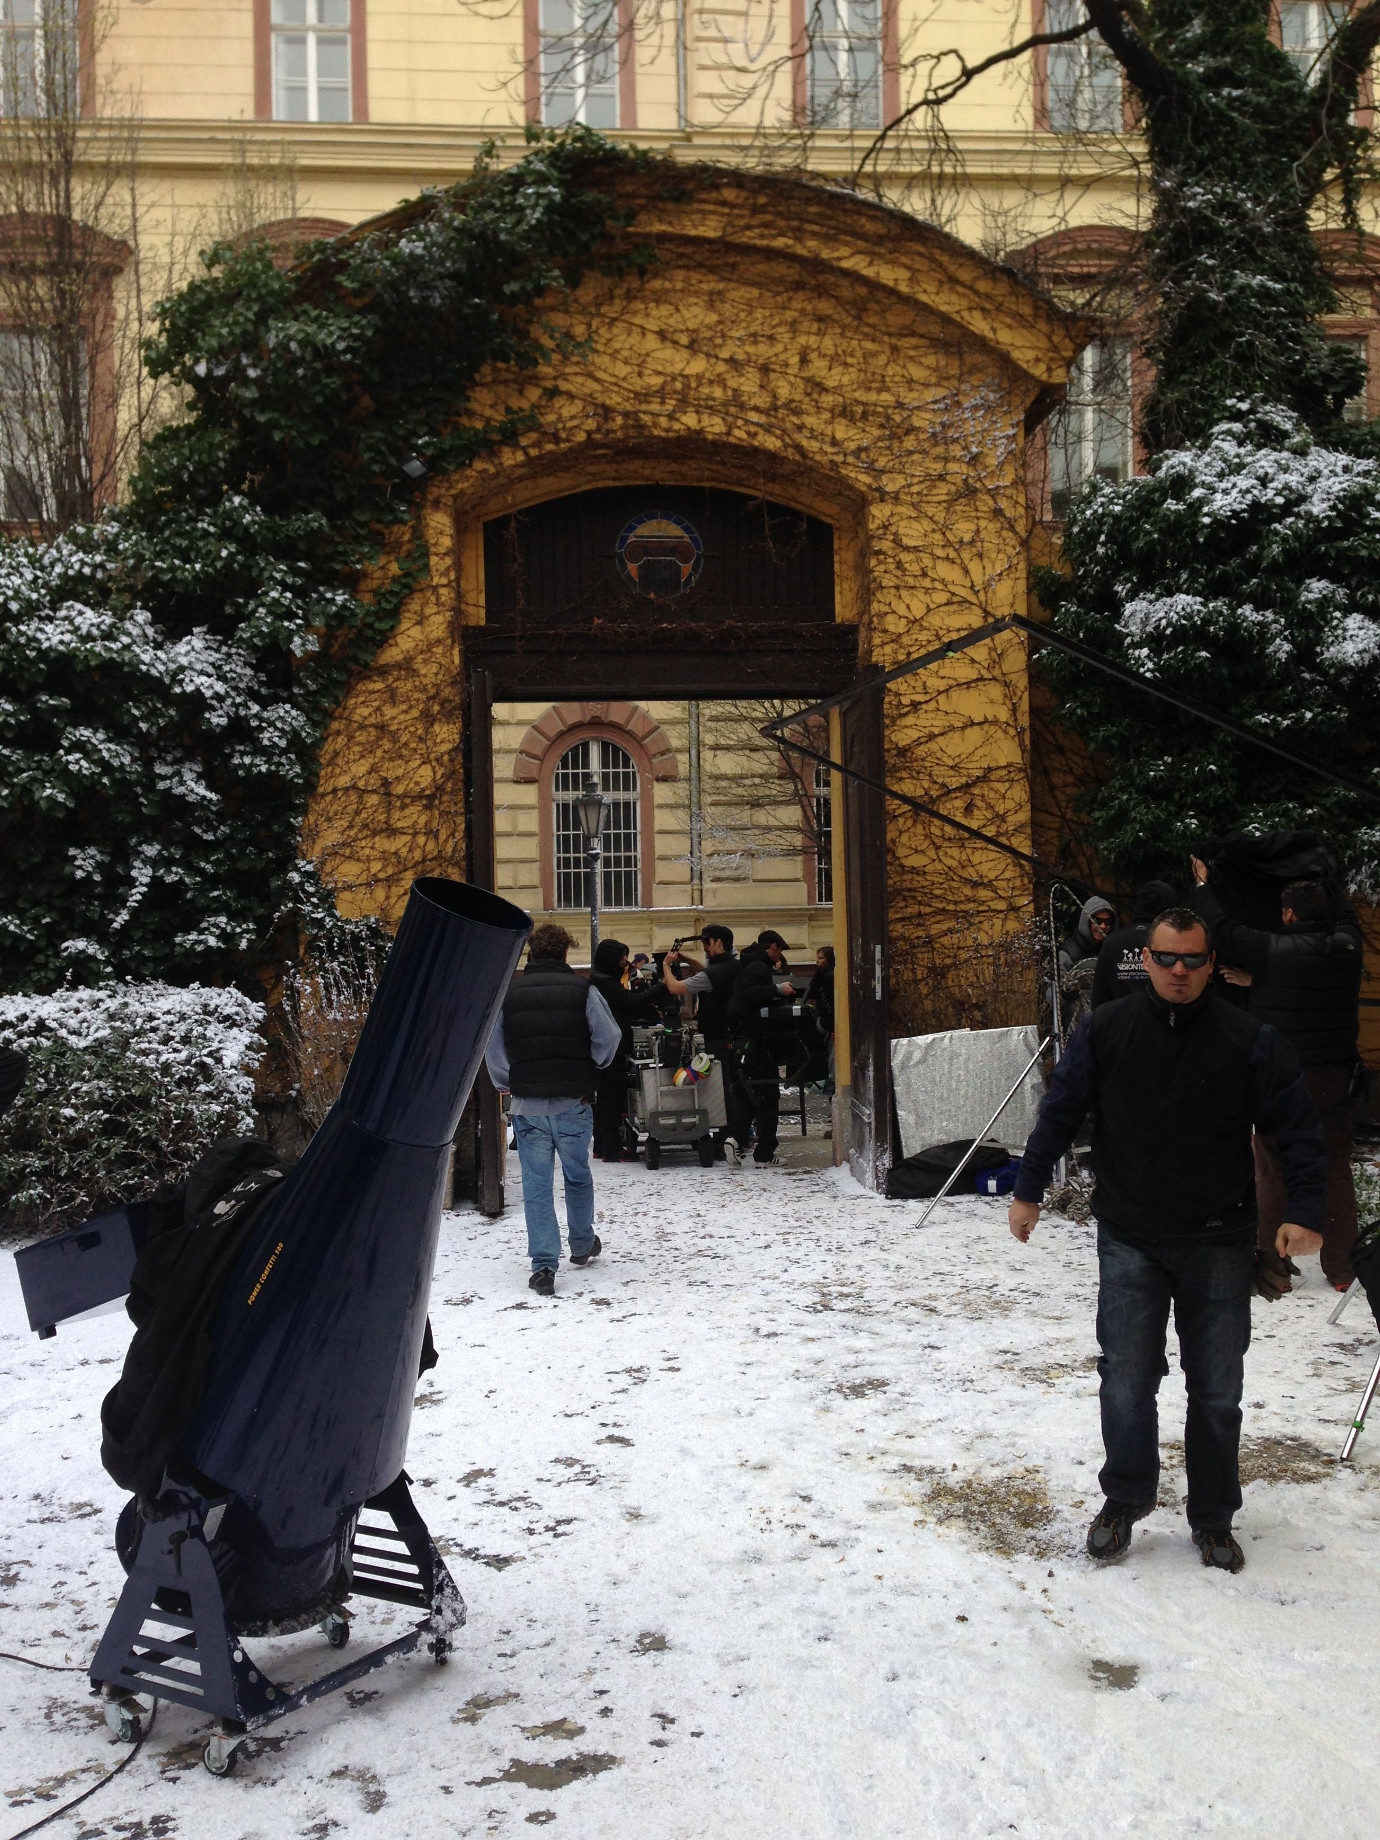 For one of the flashback scenes (to Russian Luce and Daniel), the crew had to make it snow on a balmy day in March.